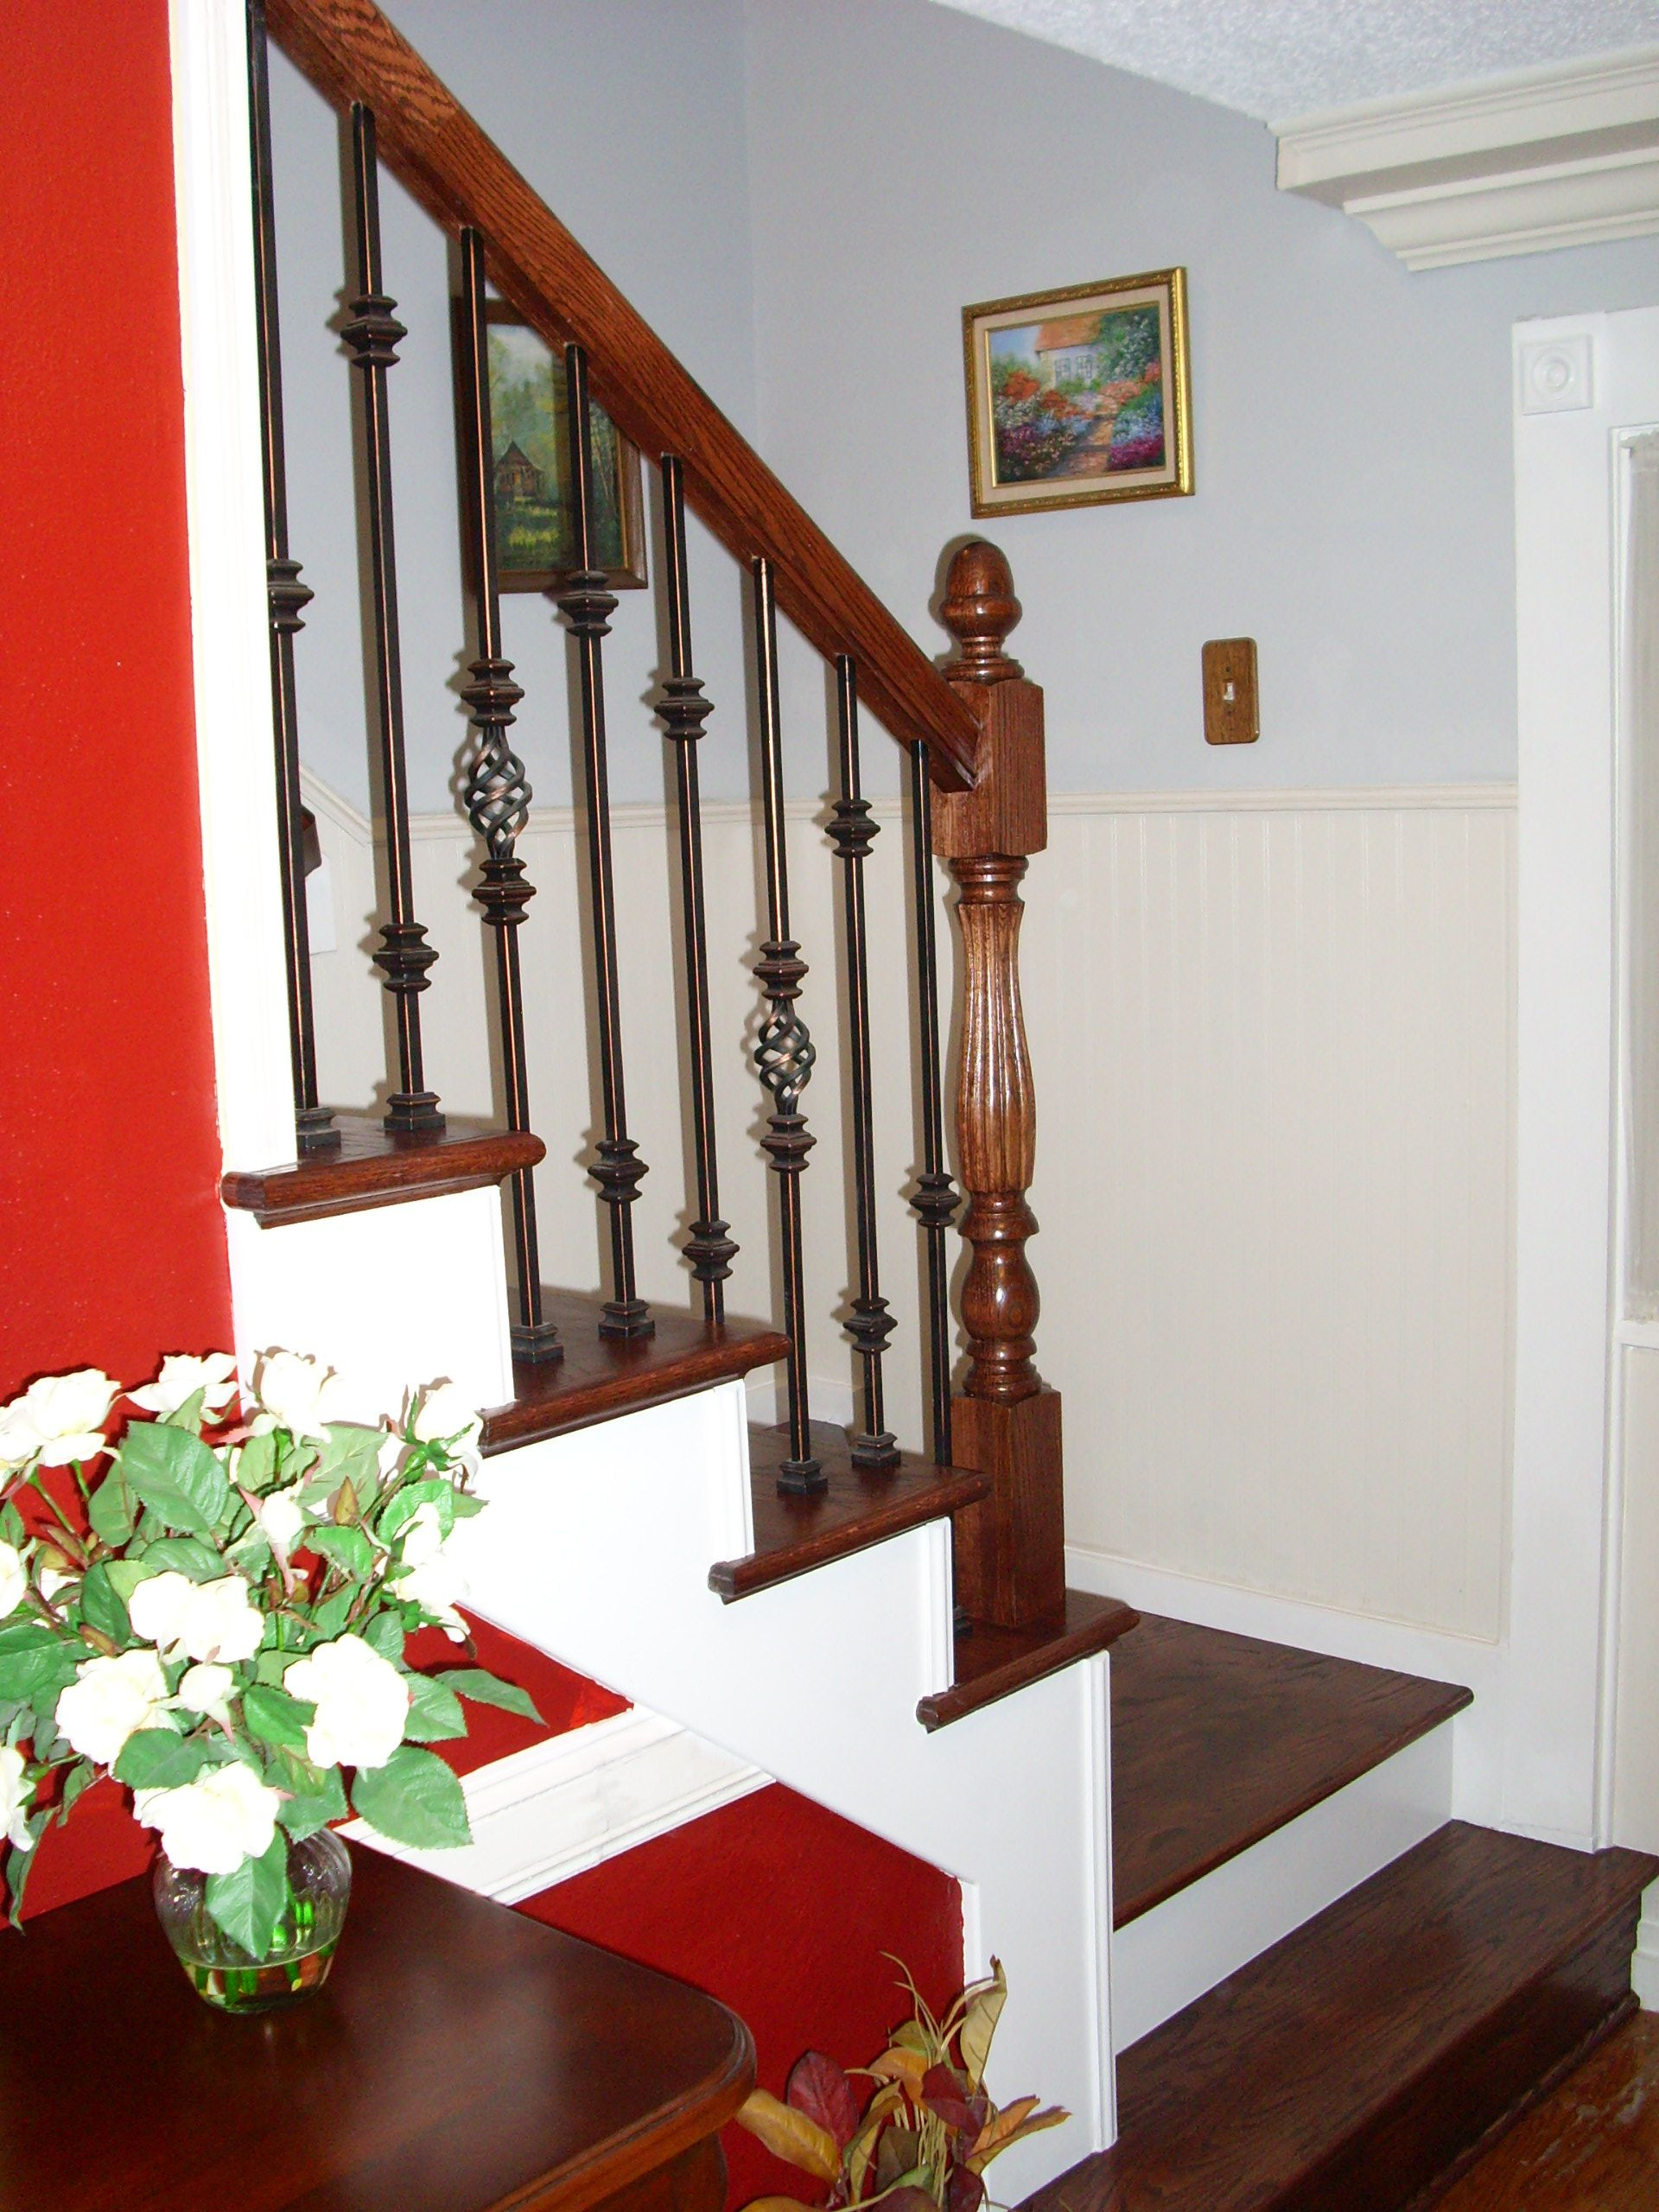 This design was created with Versatile series balusters The single knuckle bar 16 1